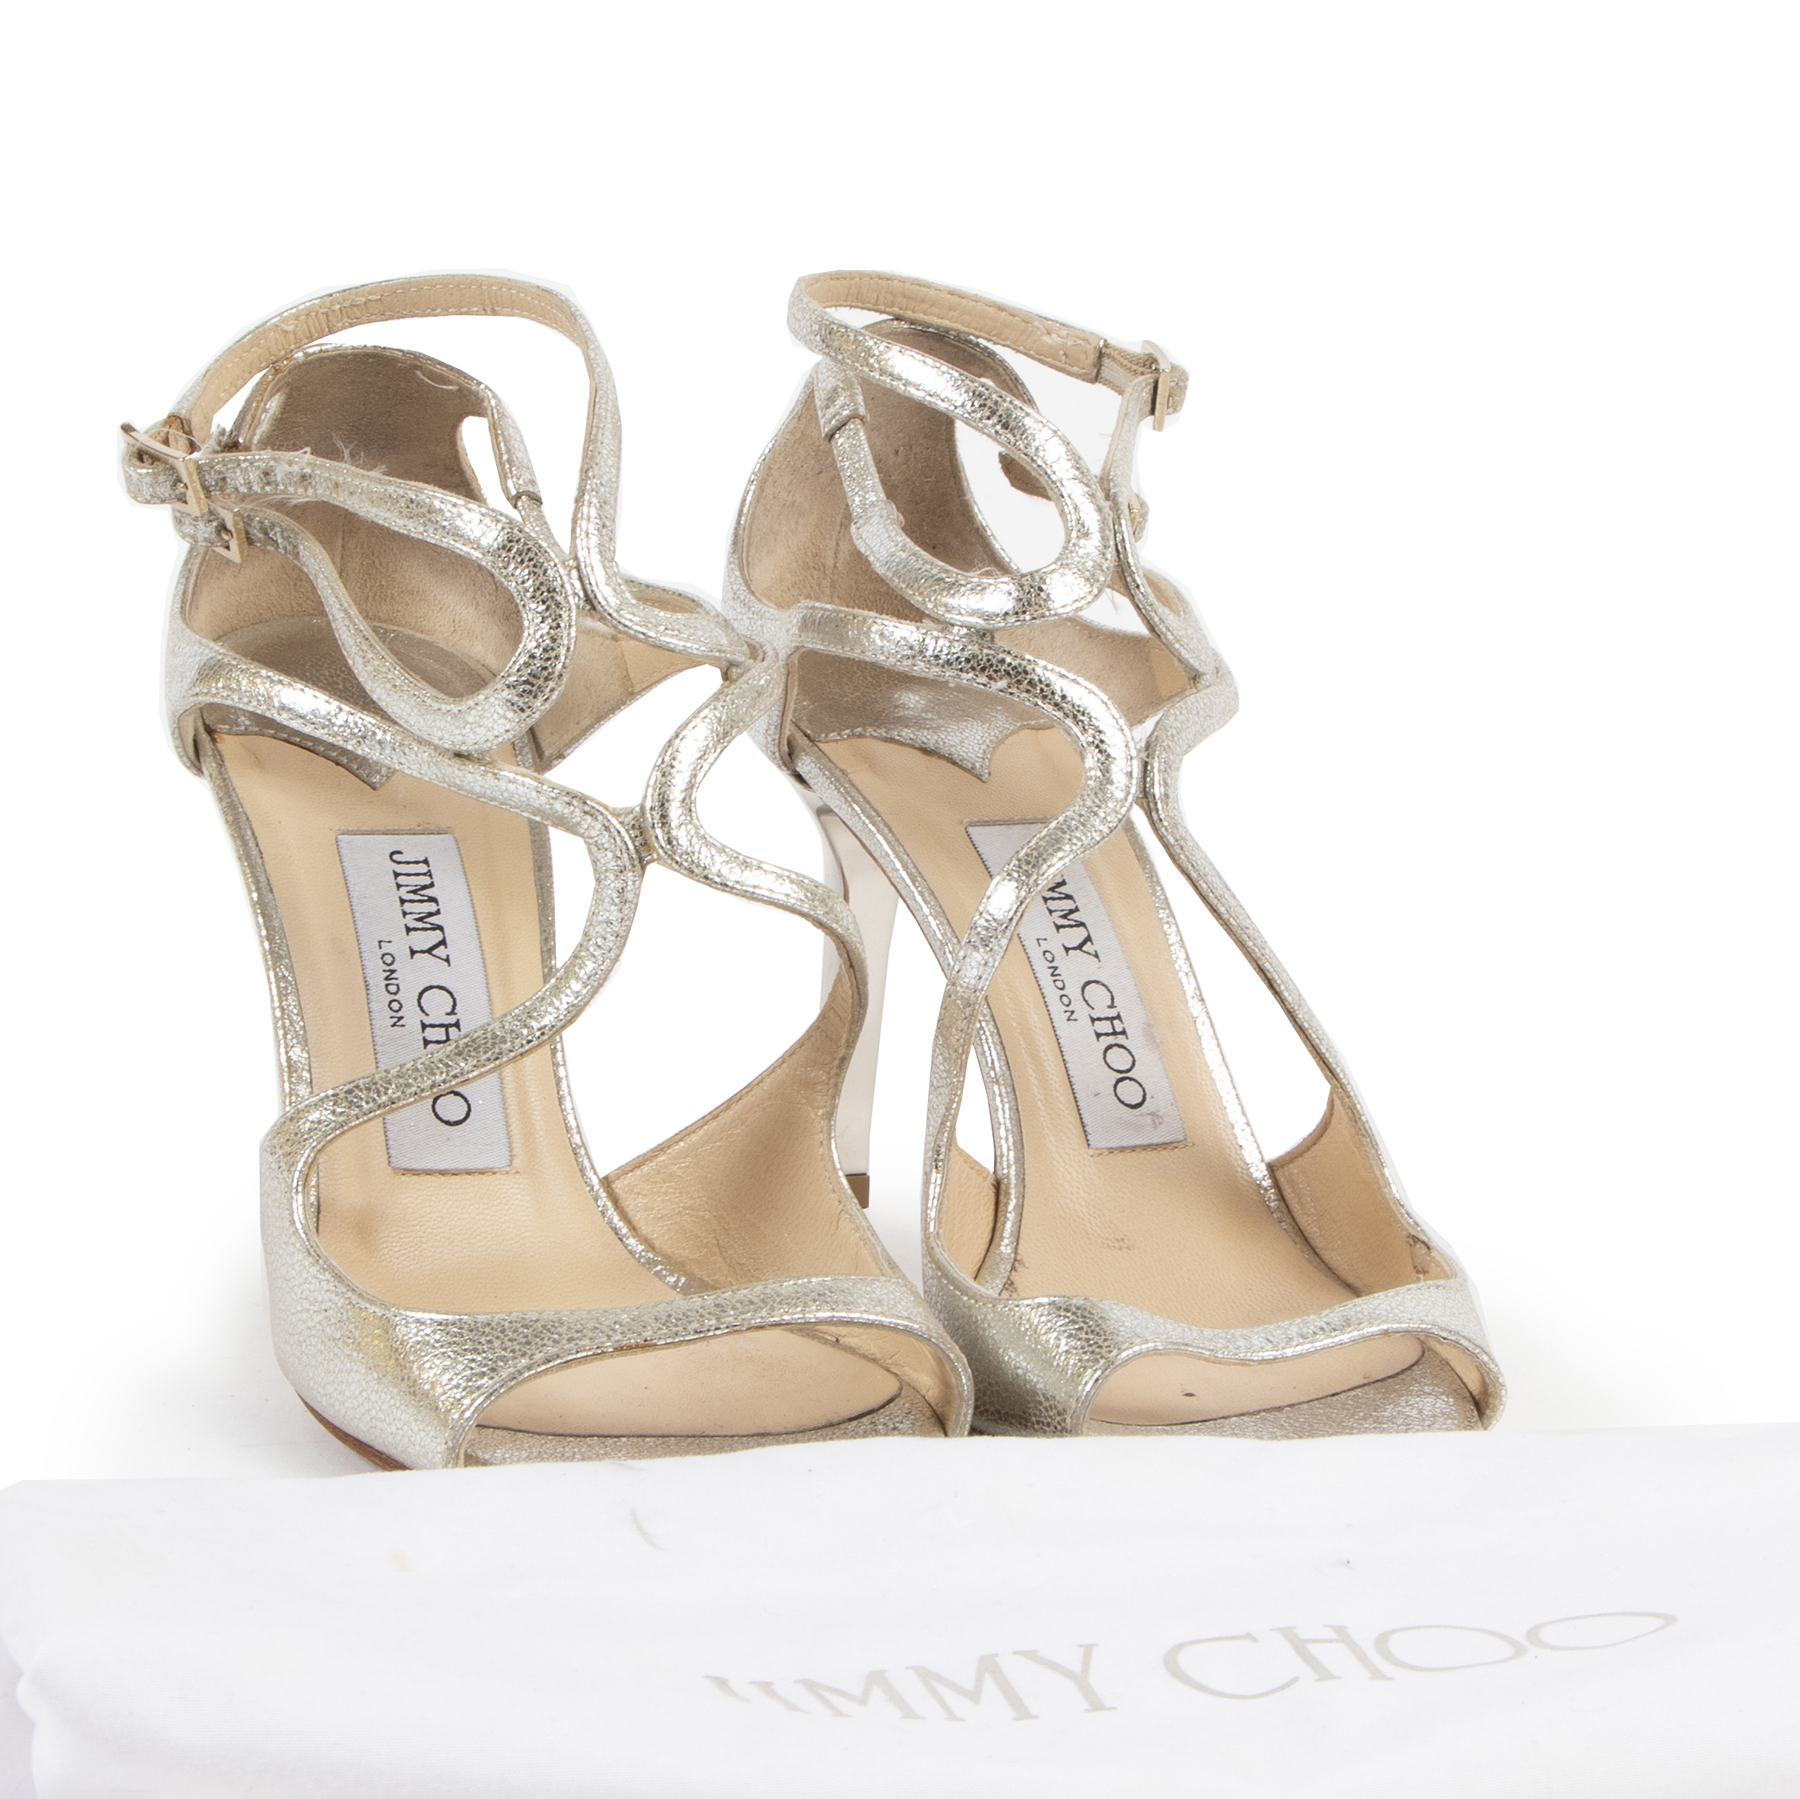 We buy and selll your authentic designer Jimmy Choo Ivette Gold Heels